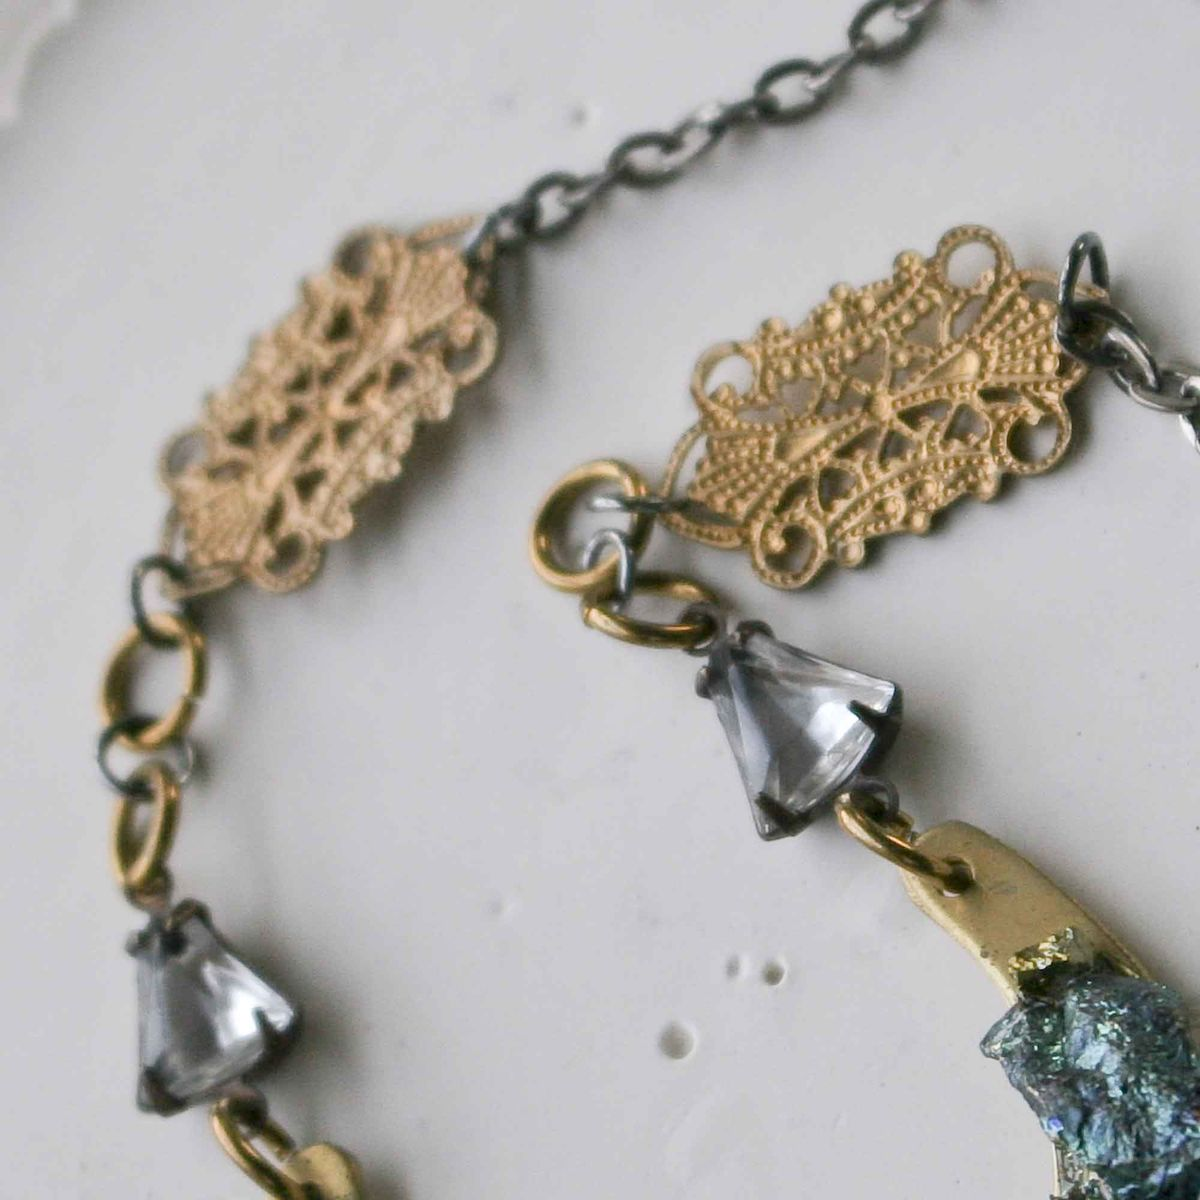 Peacock Ore Stones on a Brass Crescent Pendant Necklace - product images  of